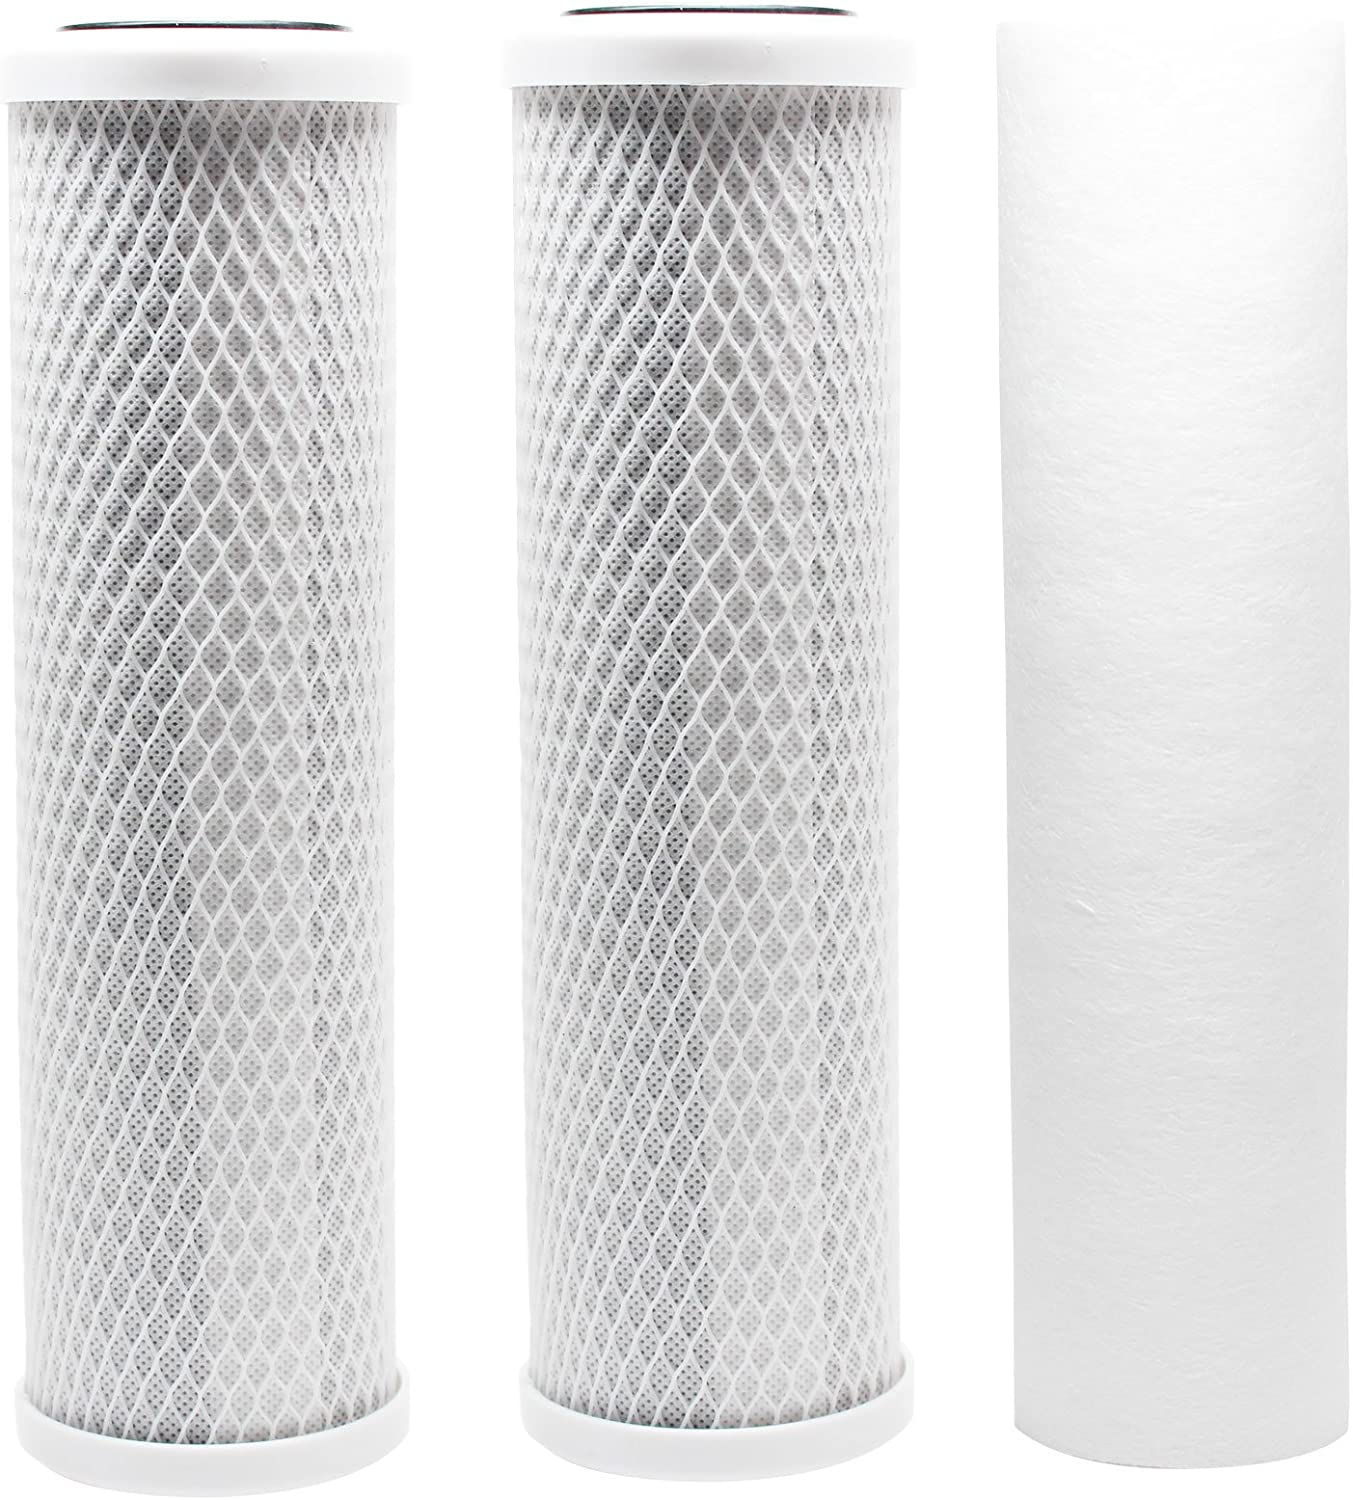 Denali Pure Brand Replacement Filter Kit Compatible with Krystal Pure KR10 RO System Includes Carbon Block Filters /& Polypropylene Sediment Filter